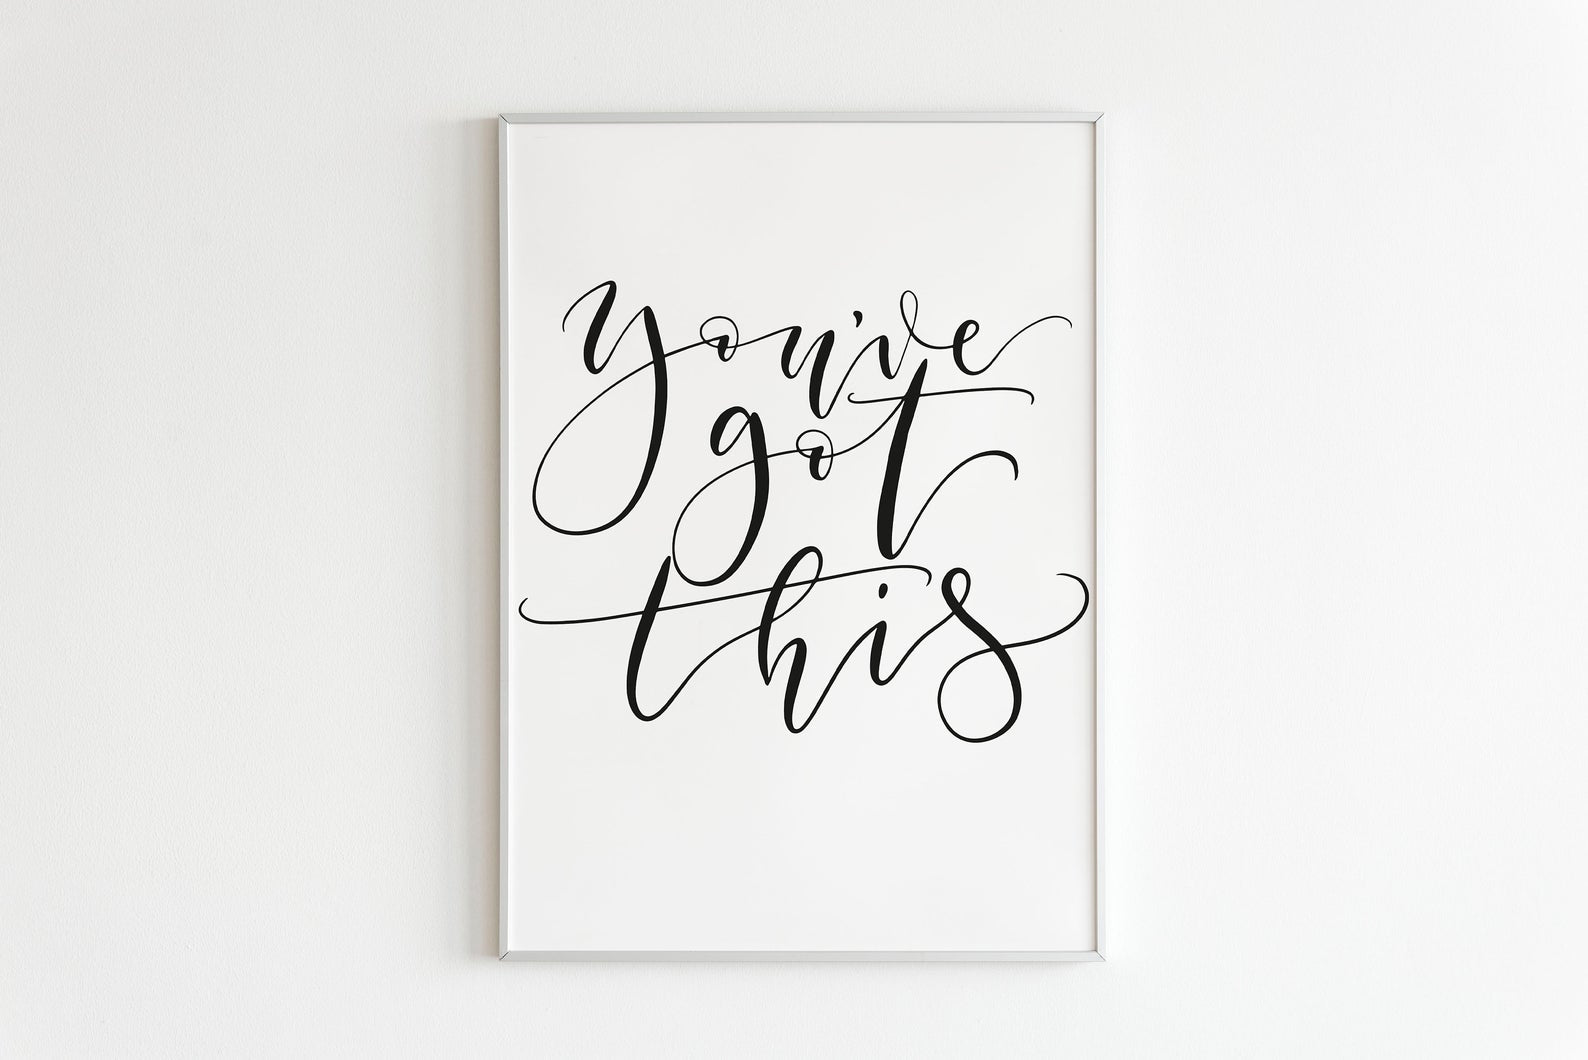 'You've got this' calligraphy print - Art Print